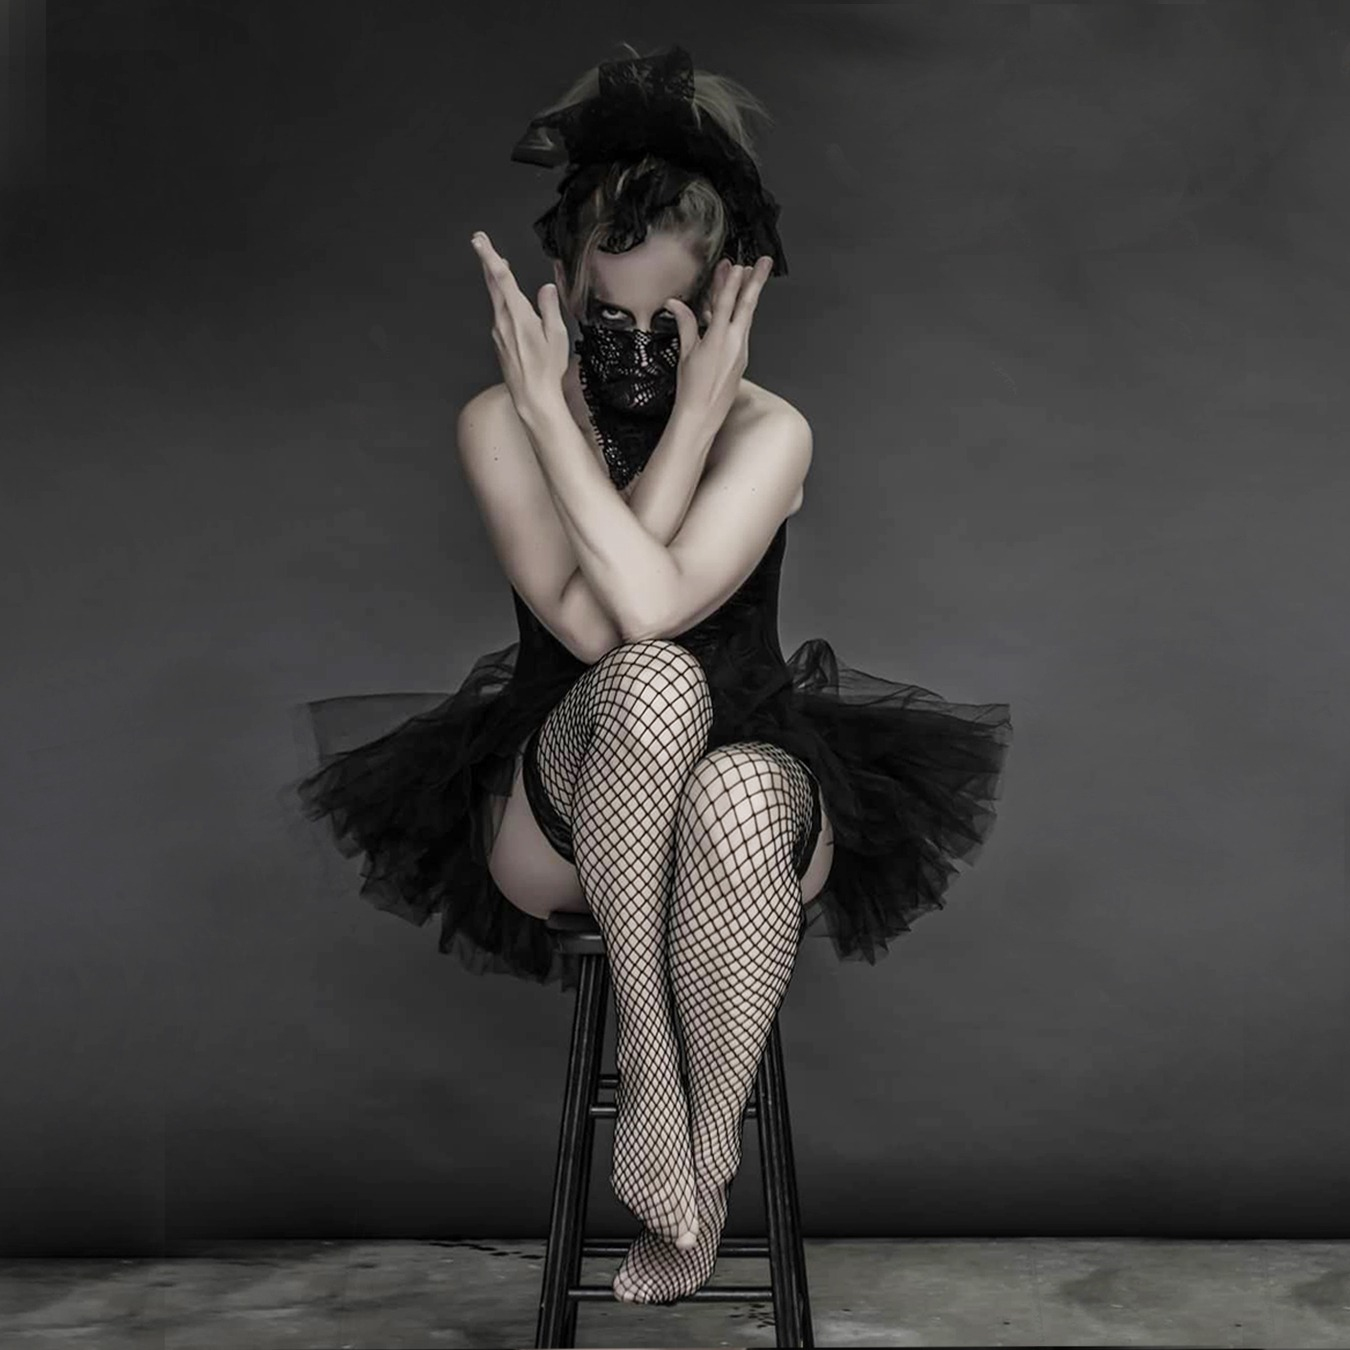 Ballerina sitting on a high chair, wearing a black tutu skirt with black corsage; covering her mouth with a screened scarf and with both arms crossed near her face forming a V